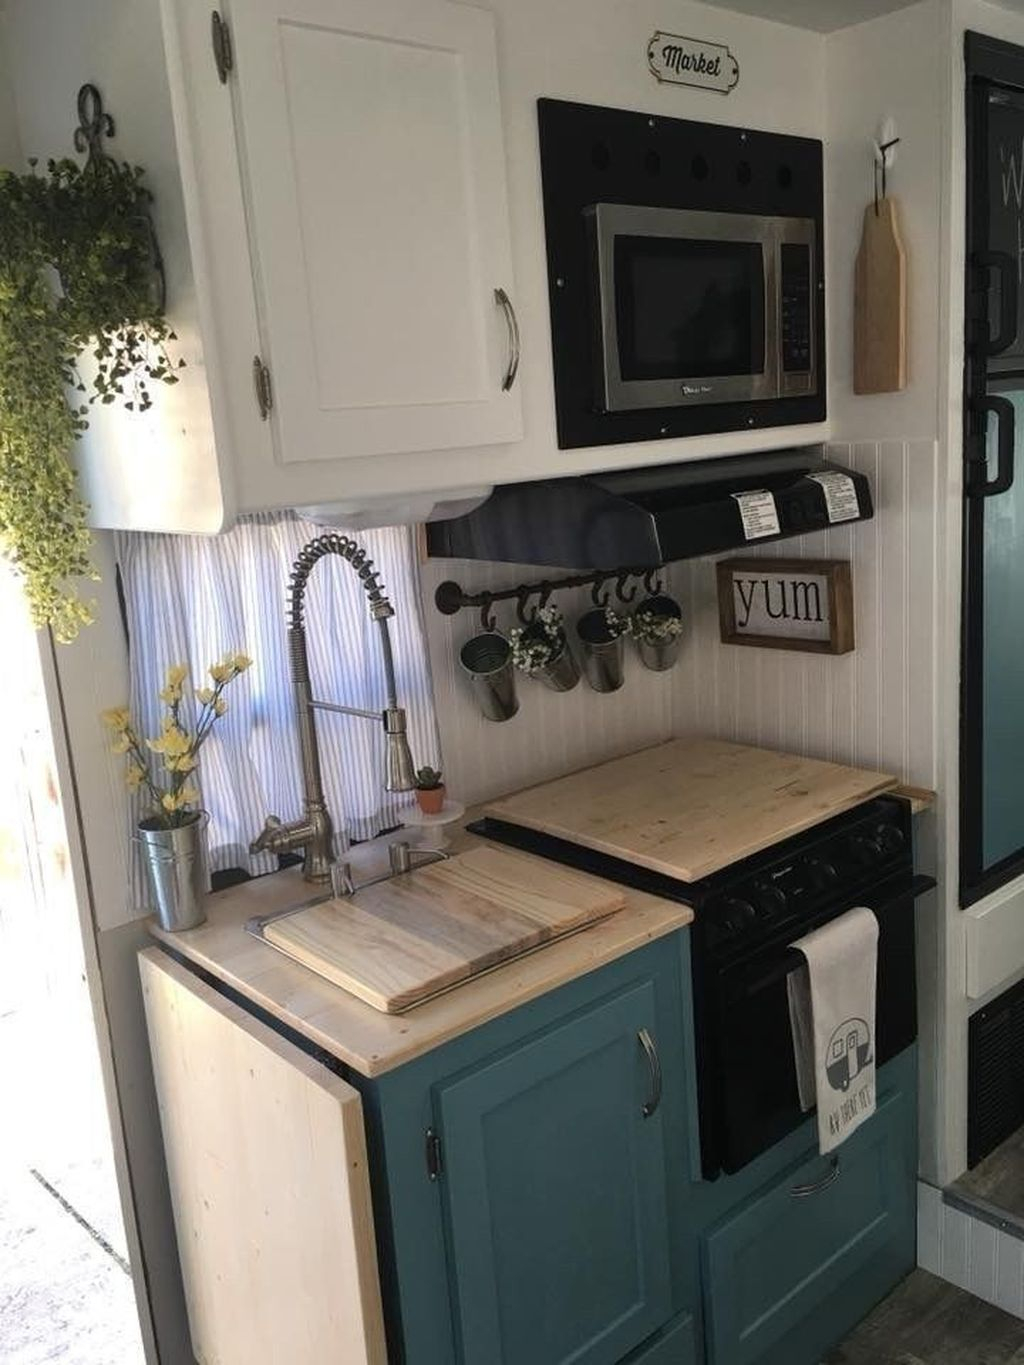 Classy Kitchen Remodeling Ideas On A Budget This Year 14